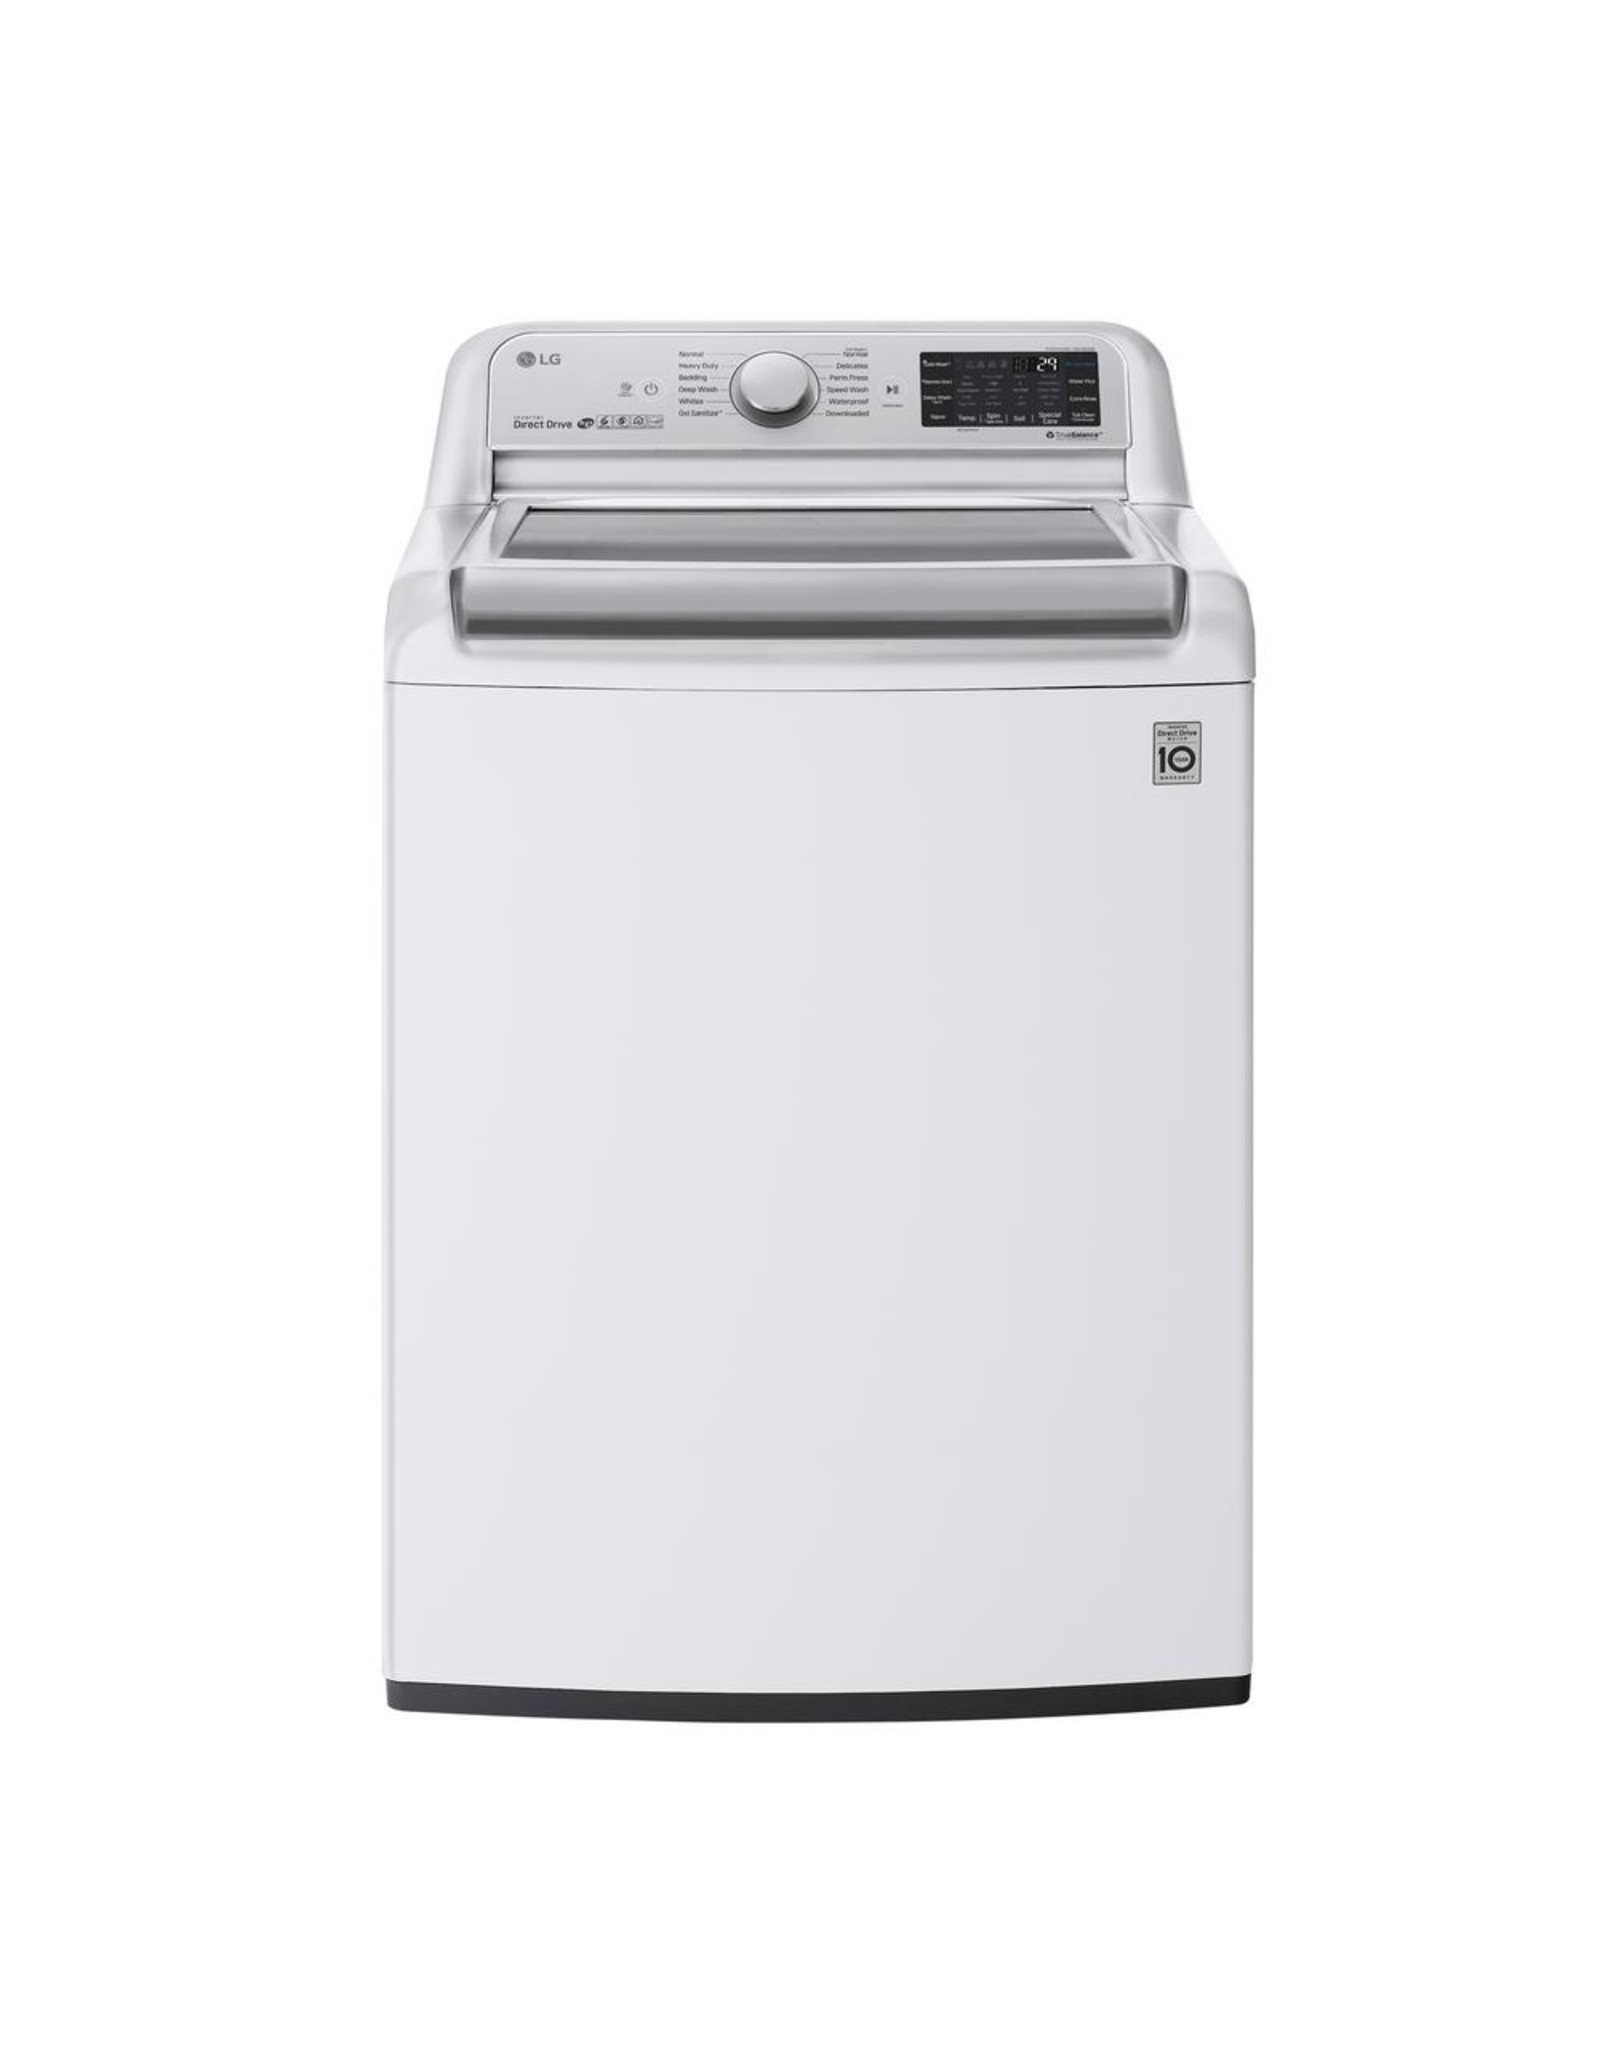 LG Electronics WT7800CW 5.5 cu. ft. High Efficiency Mega Capacity Smart Top Load Washer with TurboWash3D and Wi-Fi Enabled in White, ENSTARERGY